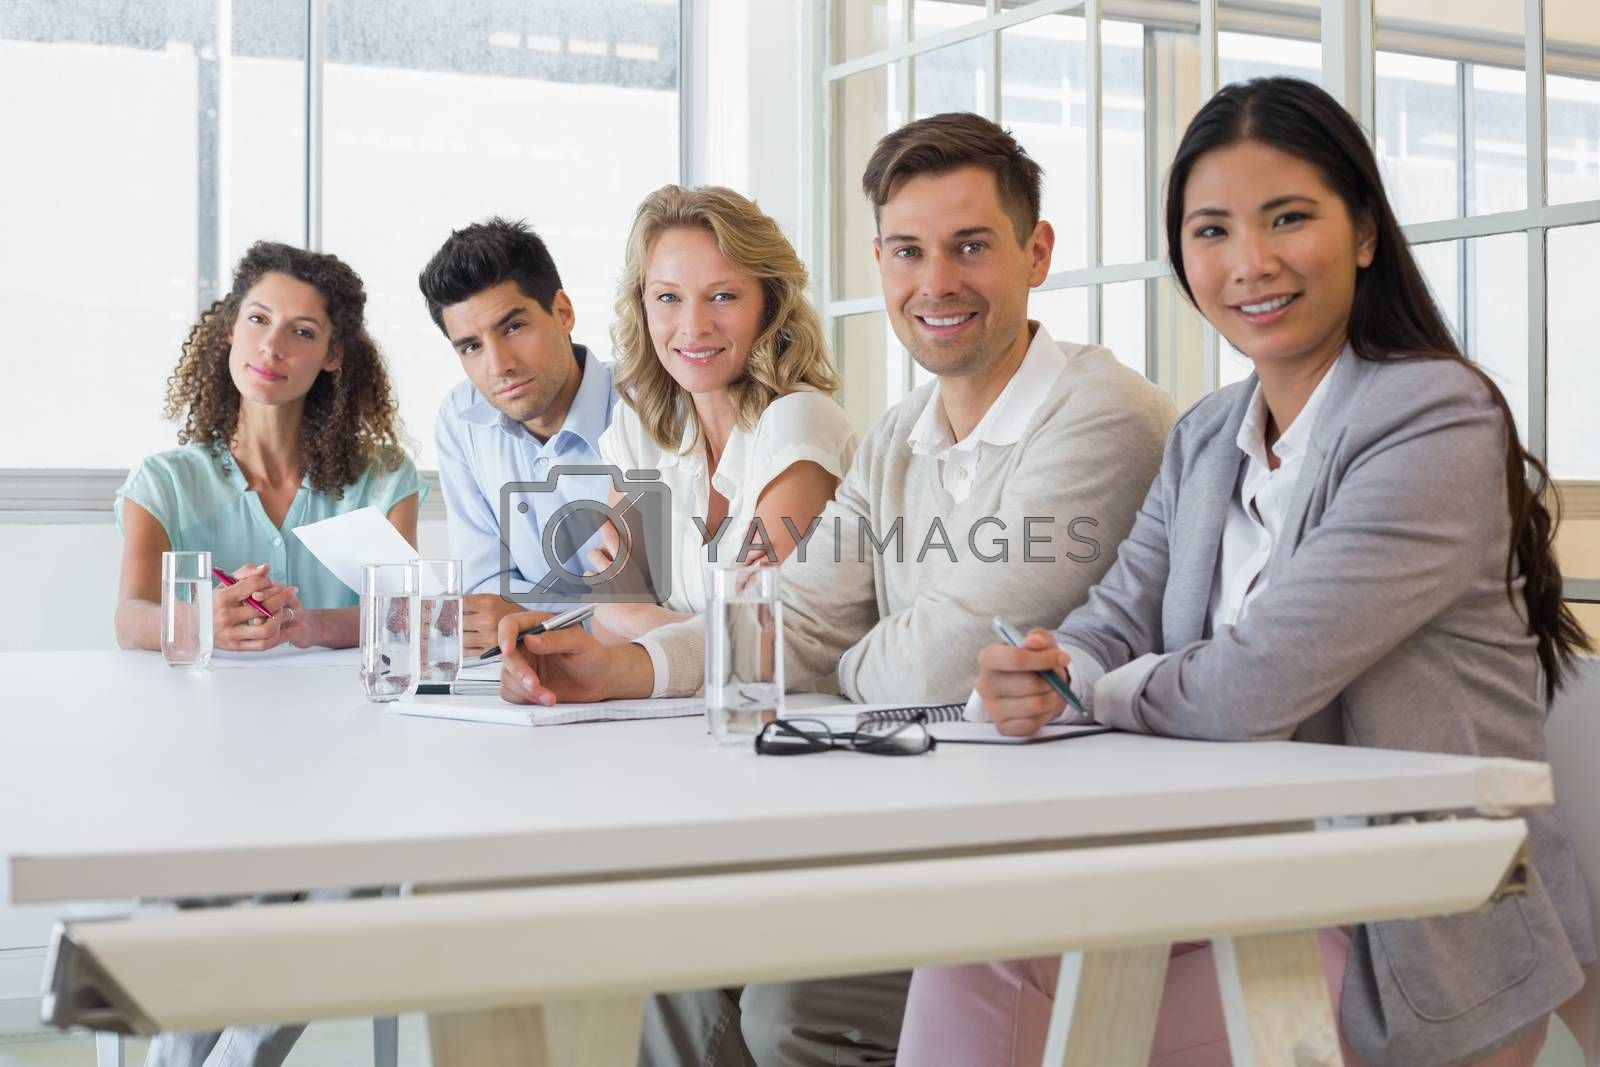 Royalty free image of Casual business team smiling at camera during meeting by Wavebreakmedia